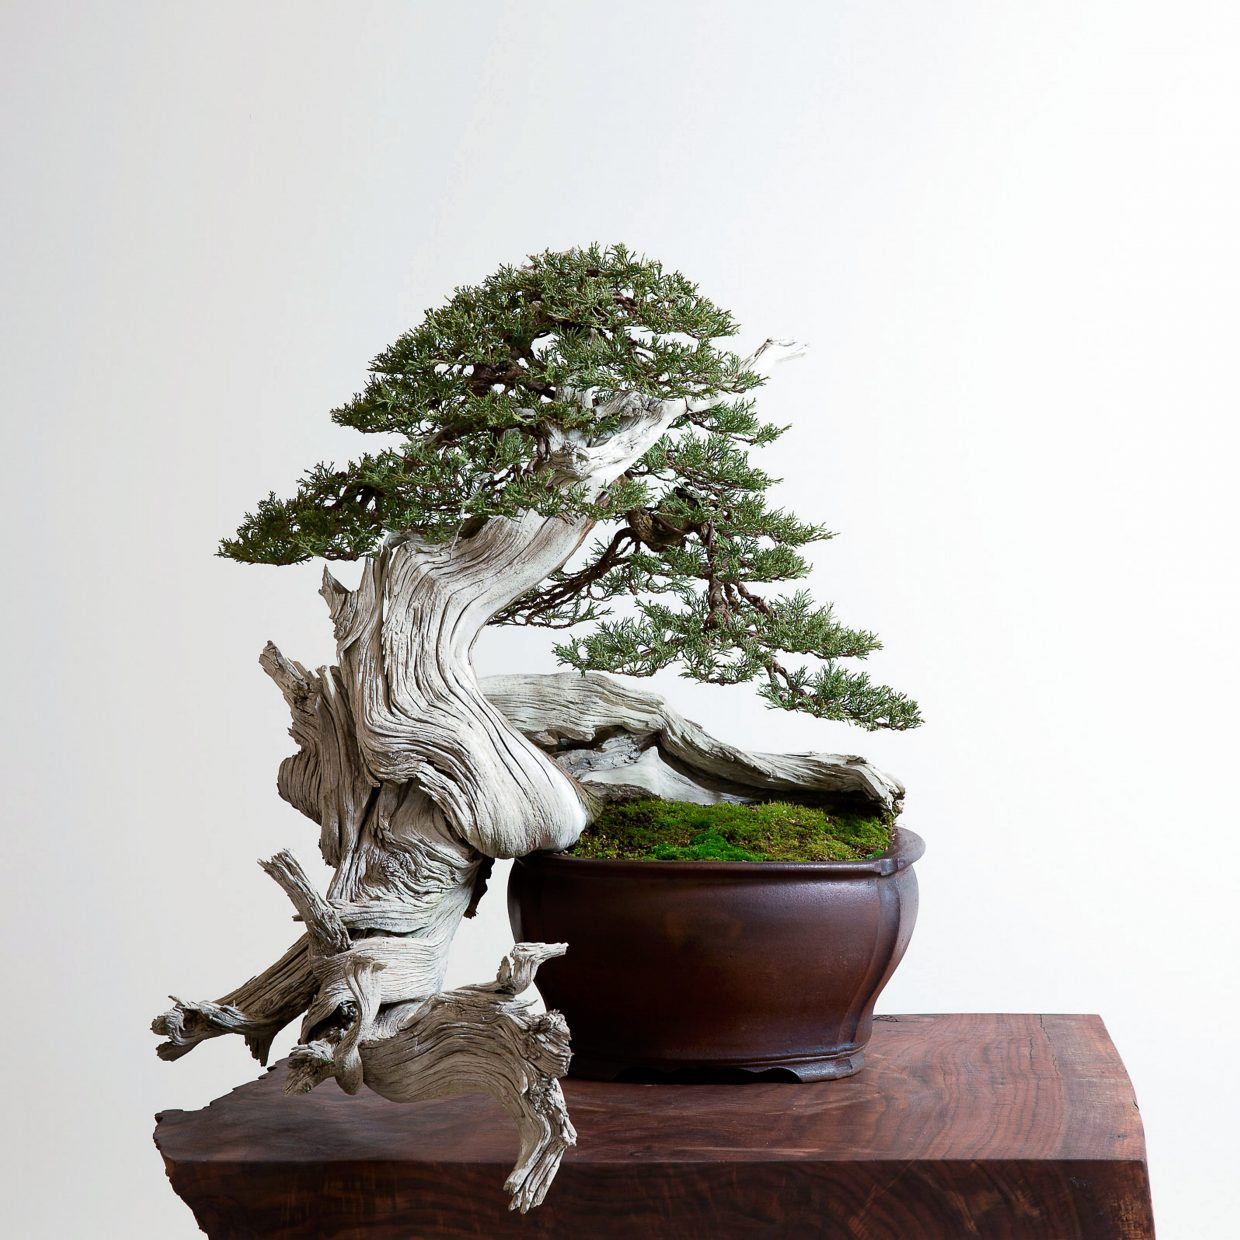 This is a Rocky Mountain juniper bonsai styled by Ryan Neil.